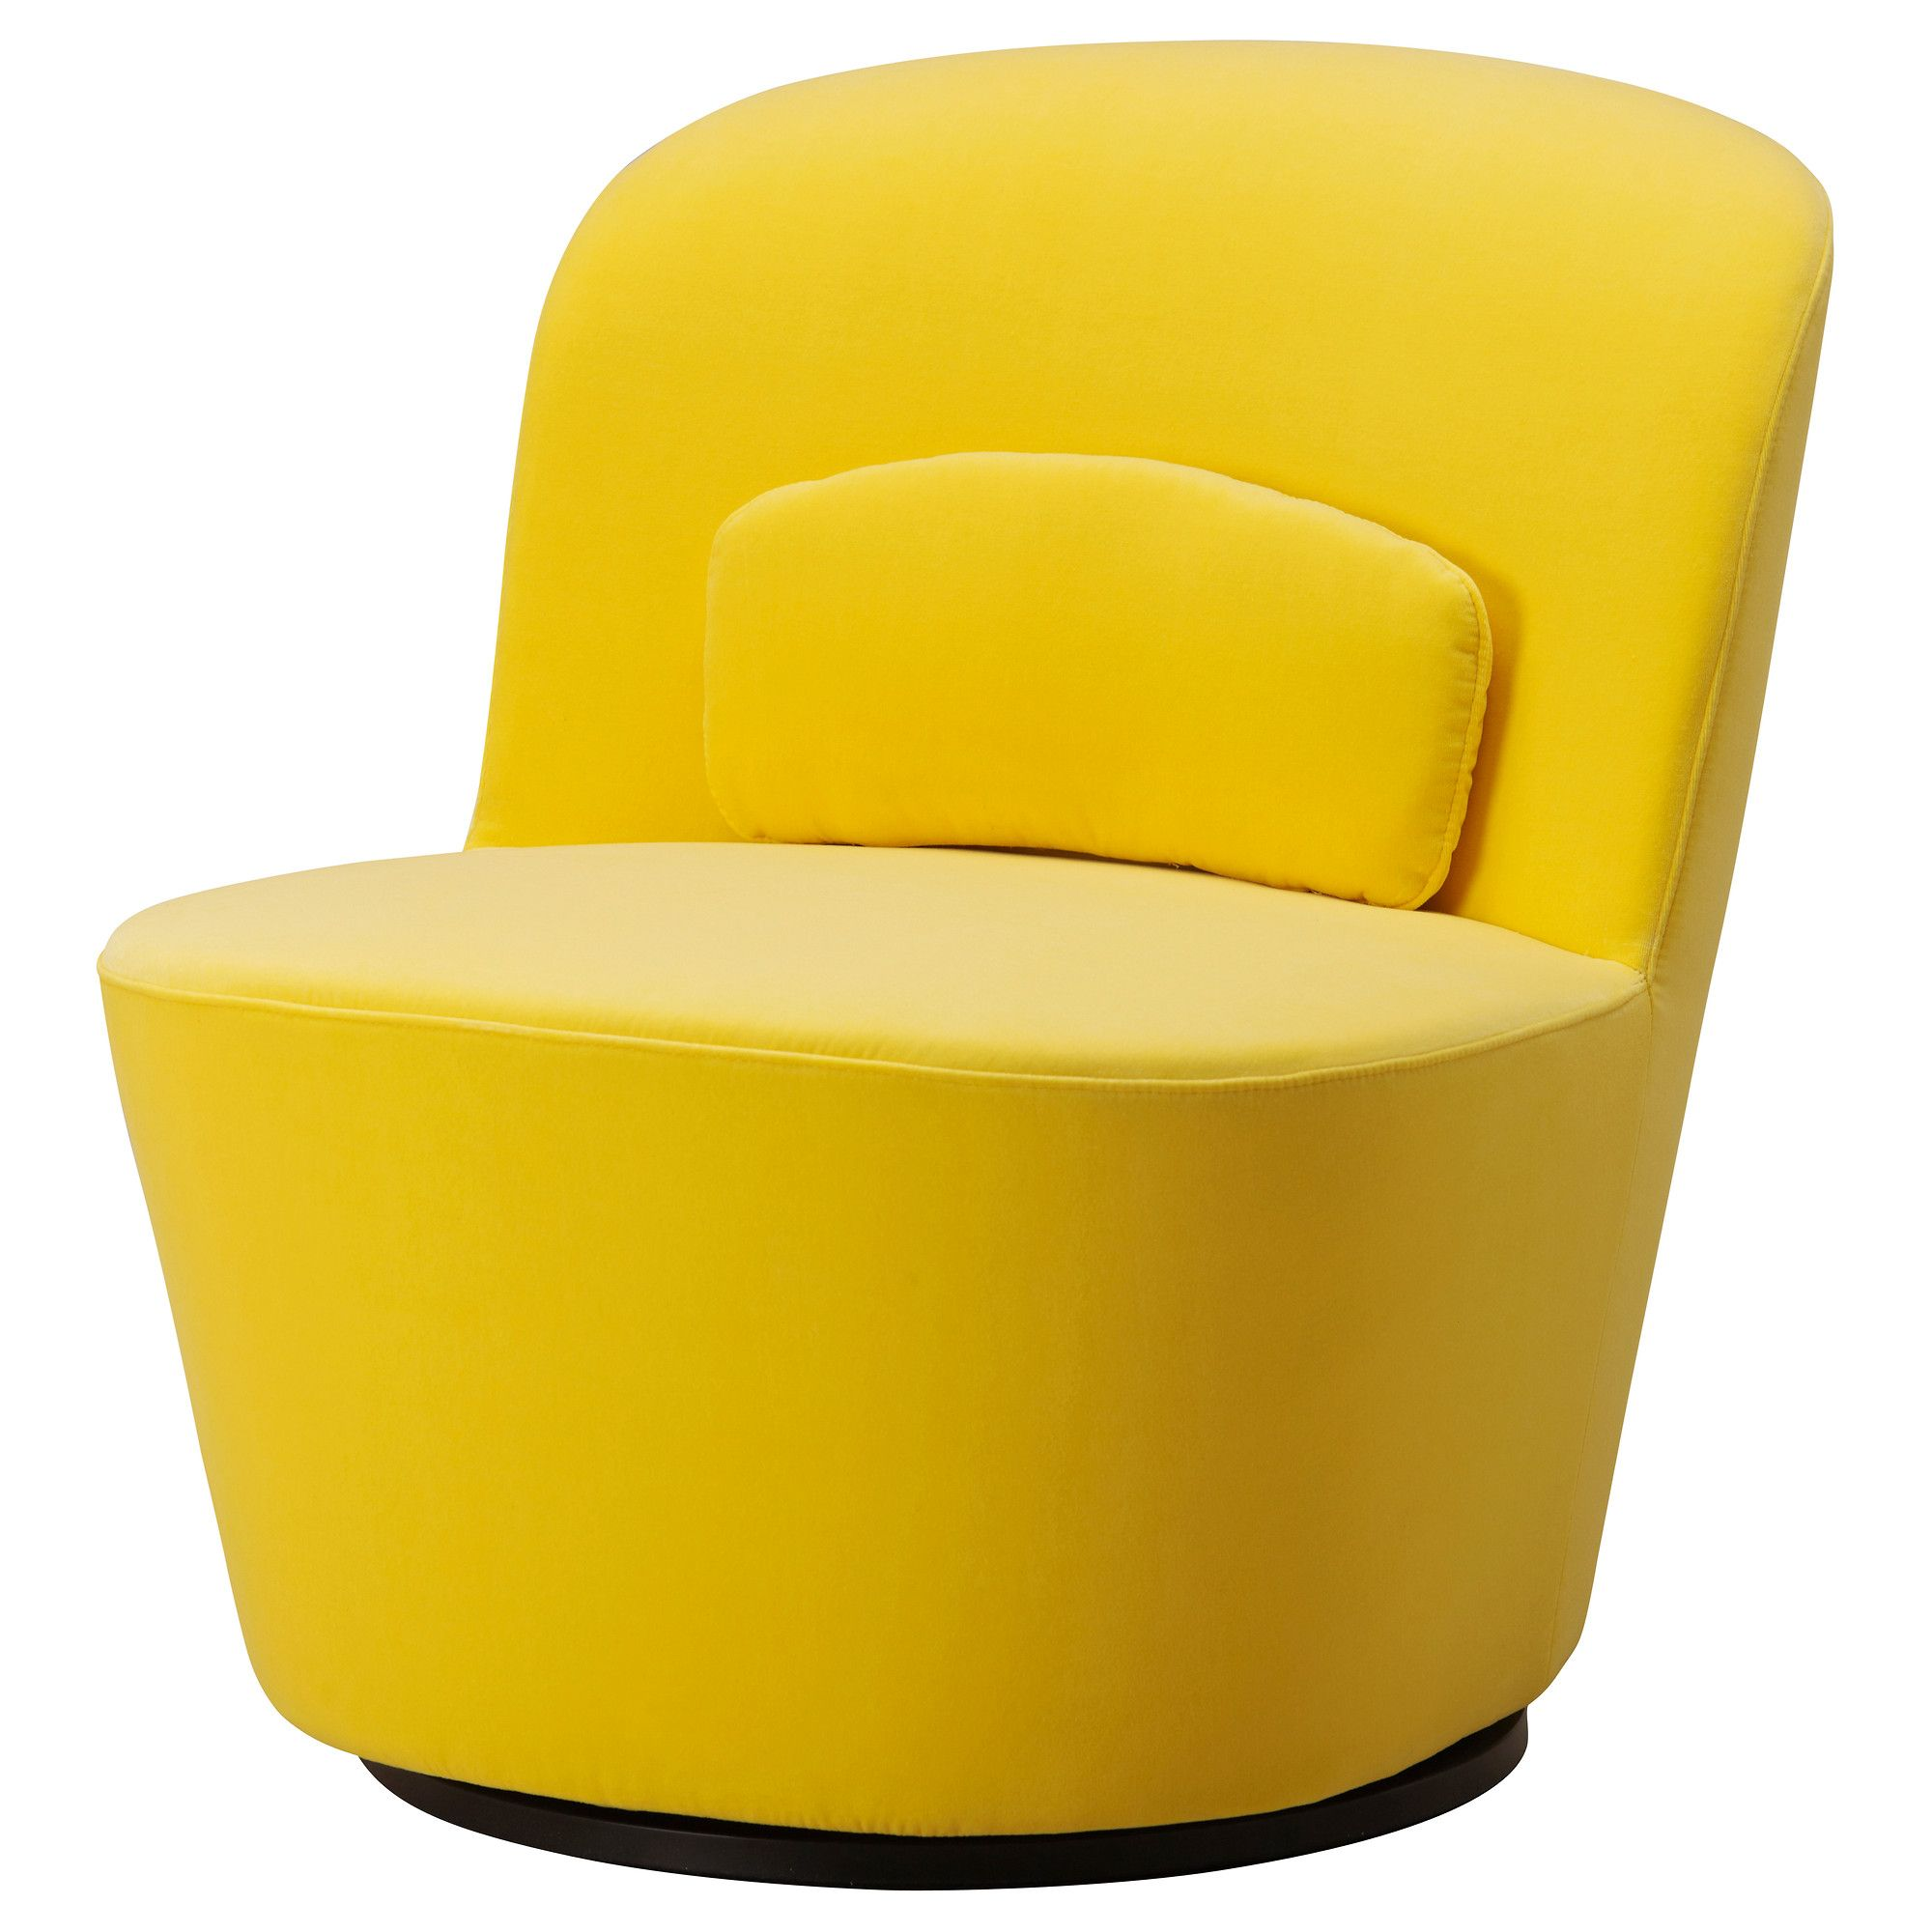 ikea stockholm fauteuil pivotant sandbacka jaune chaise en mousse haute r silience. Black Bedroom Furniture Sets. Home Design Ideas